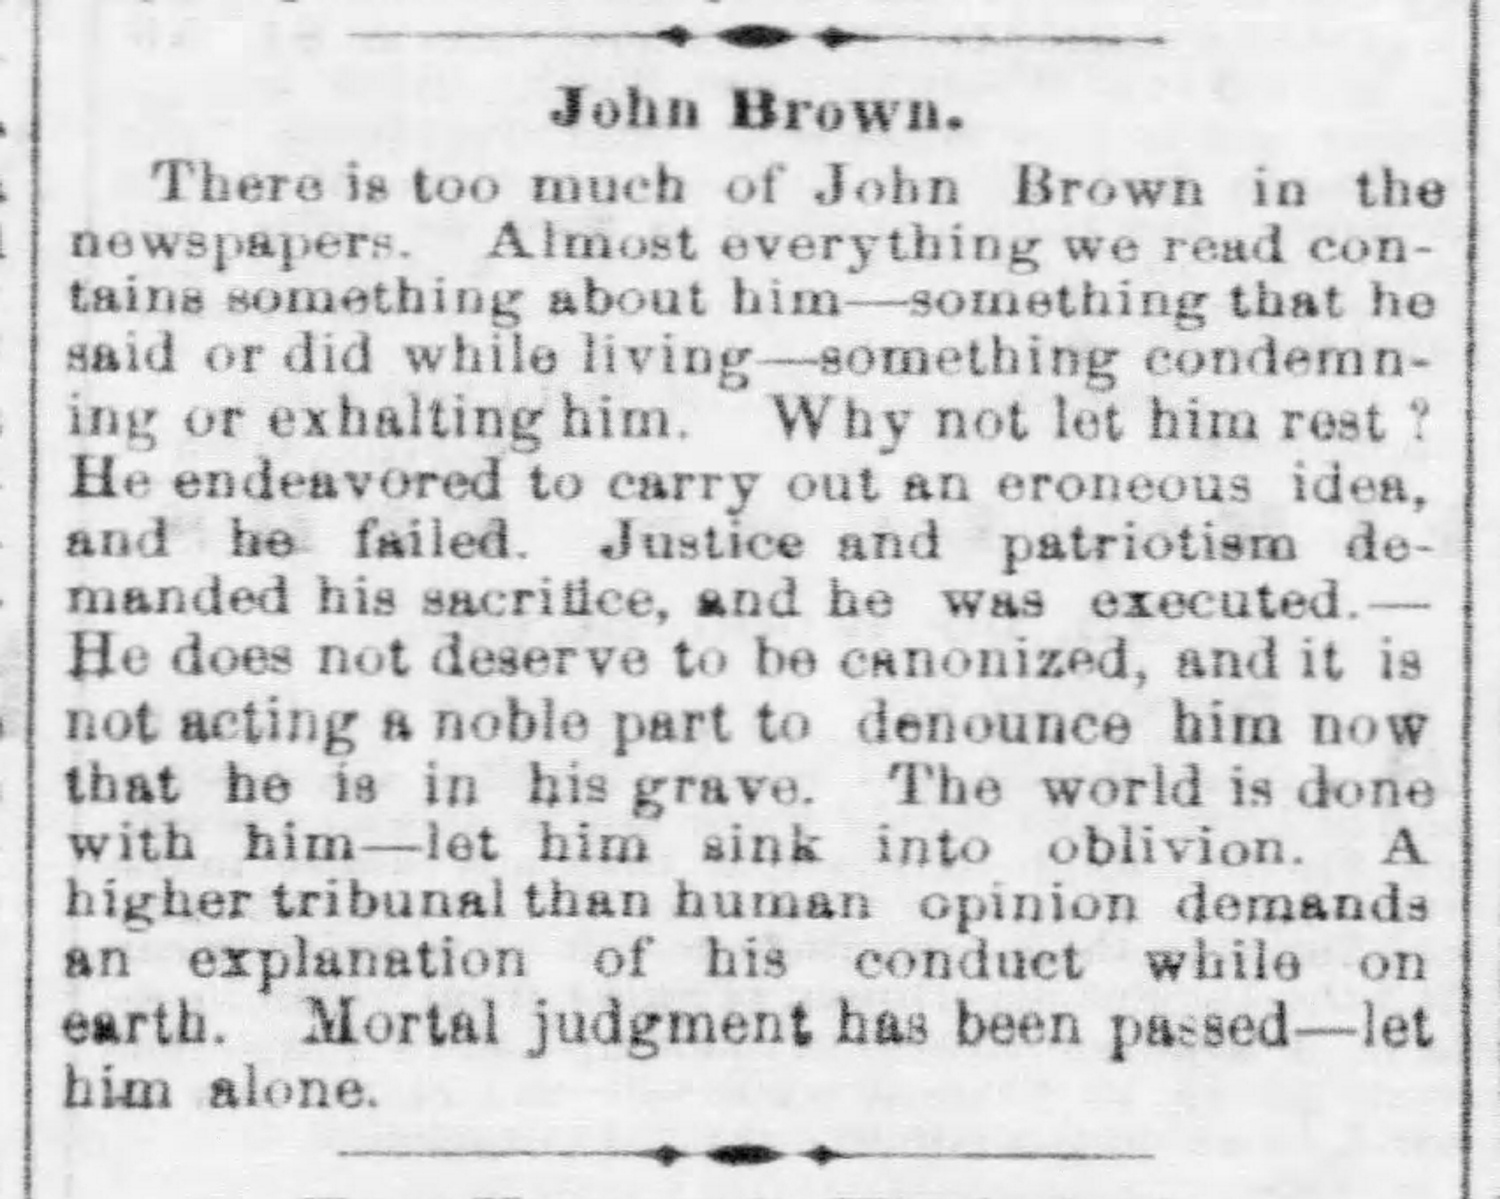 """Excerpt from the Pittsburgh Daily Post, December 21, 1859, noting that there is """"too much of John Brown in the newspapers."""" The writer's preference that Brown be left alone to """"sink into oblivion"""" was rendered untenable by the Civil War and its aftermath."""